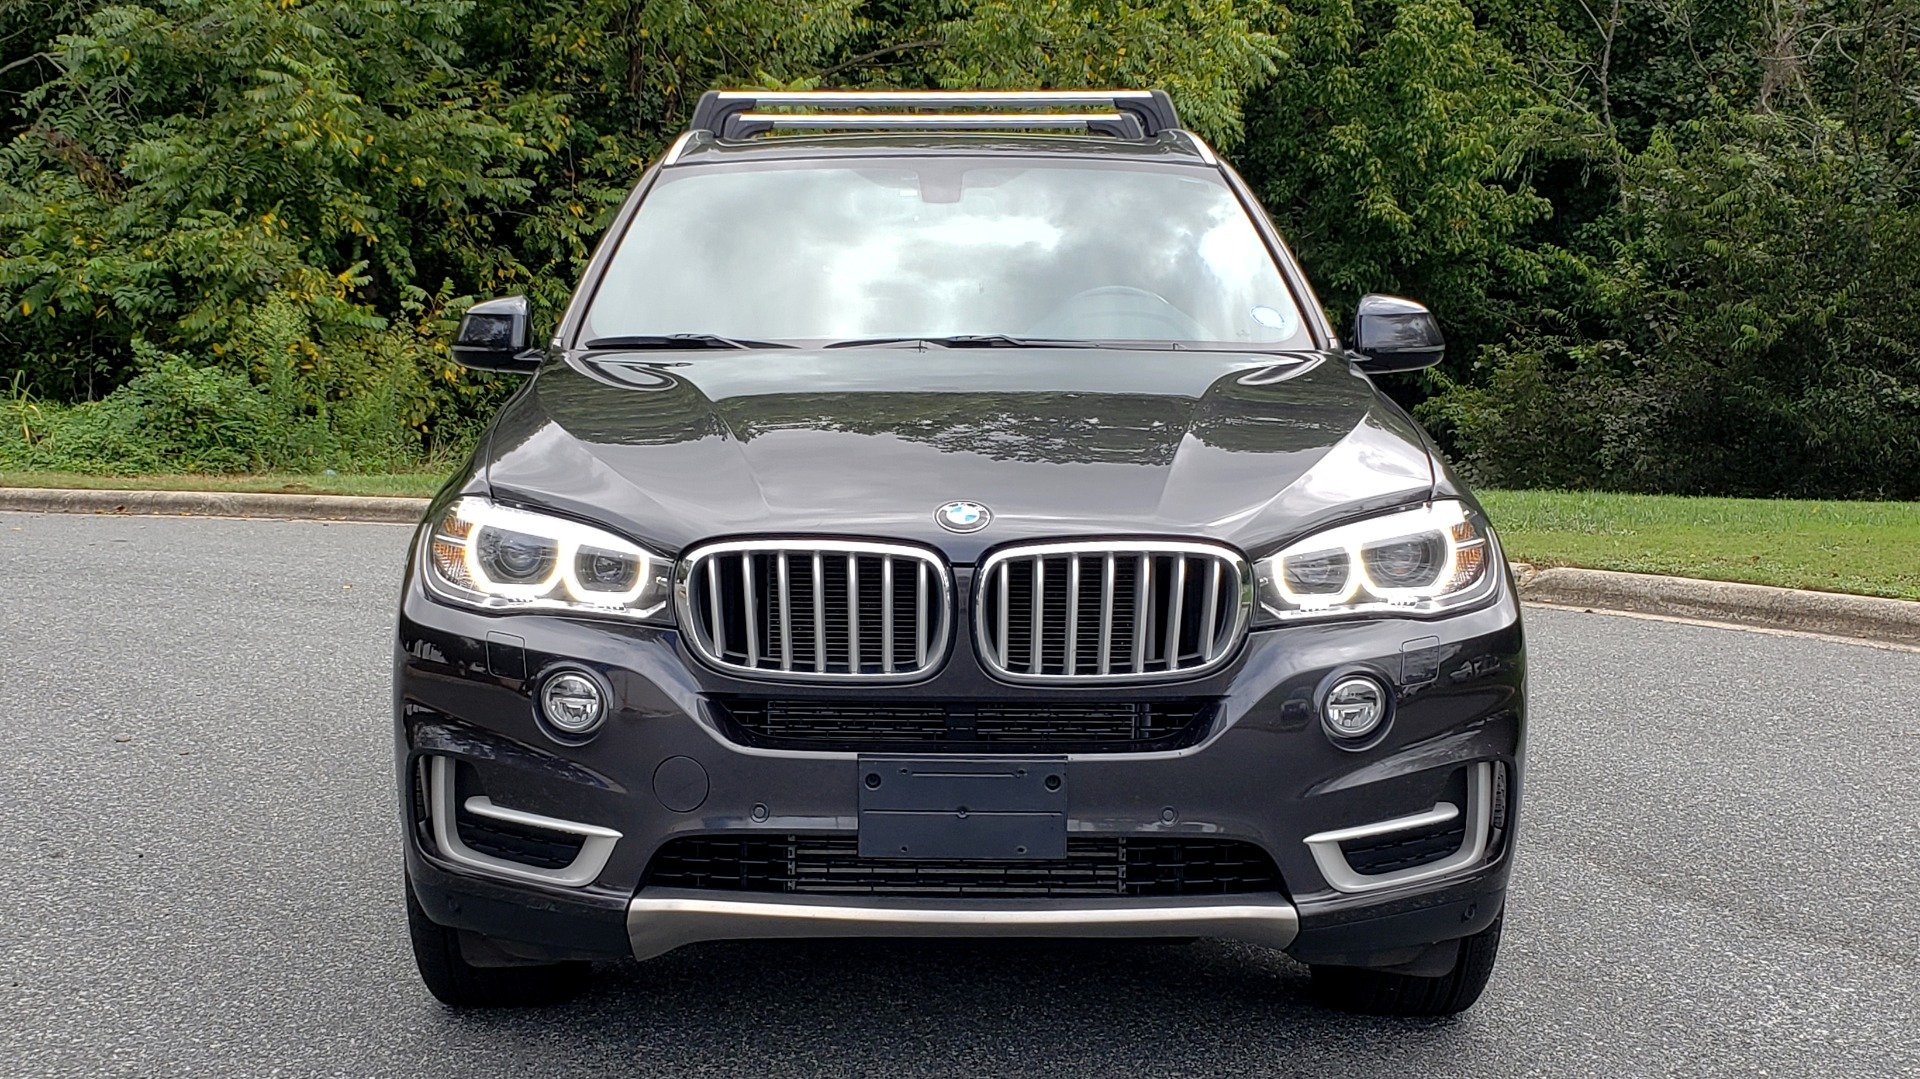 Used 2017 BMW X5 XDRIVE35I / PREM PKG / COLD WTHR / PANO-ROOF / REARVIEW for sale $37,995 at Formula Imports in Charlotte NC 28227 25